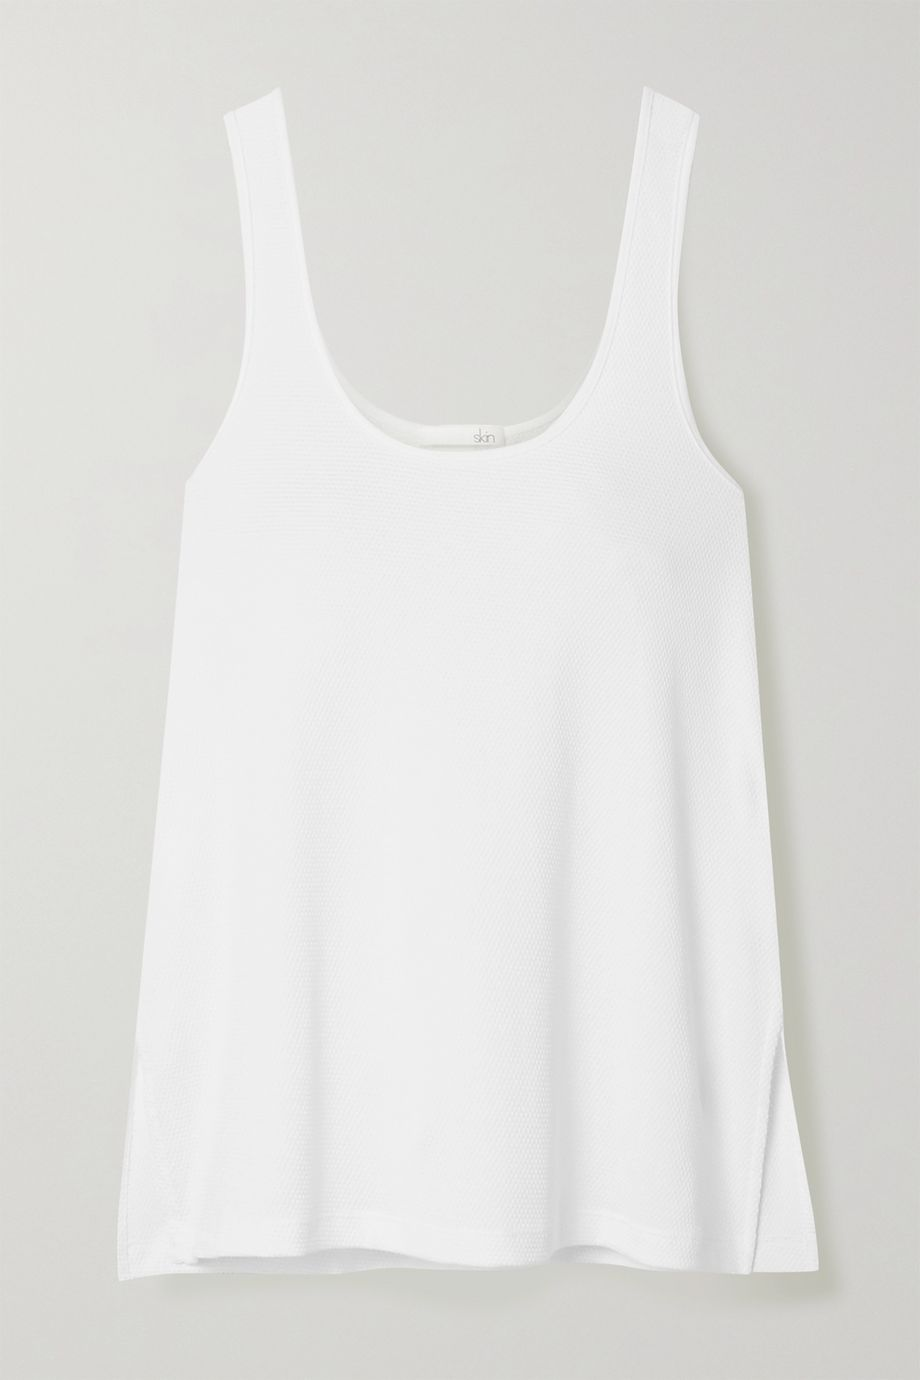 Skin Liza textured Pima cotton tank